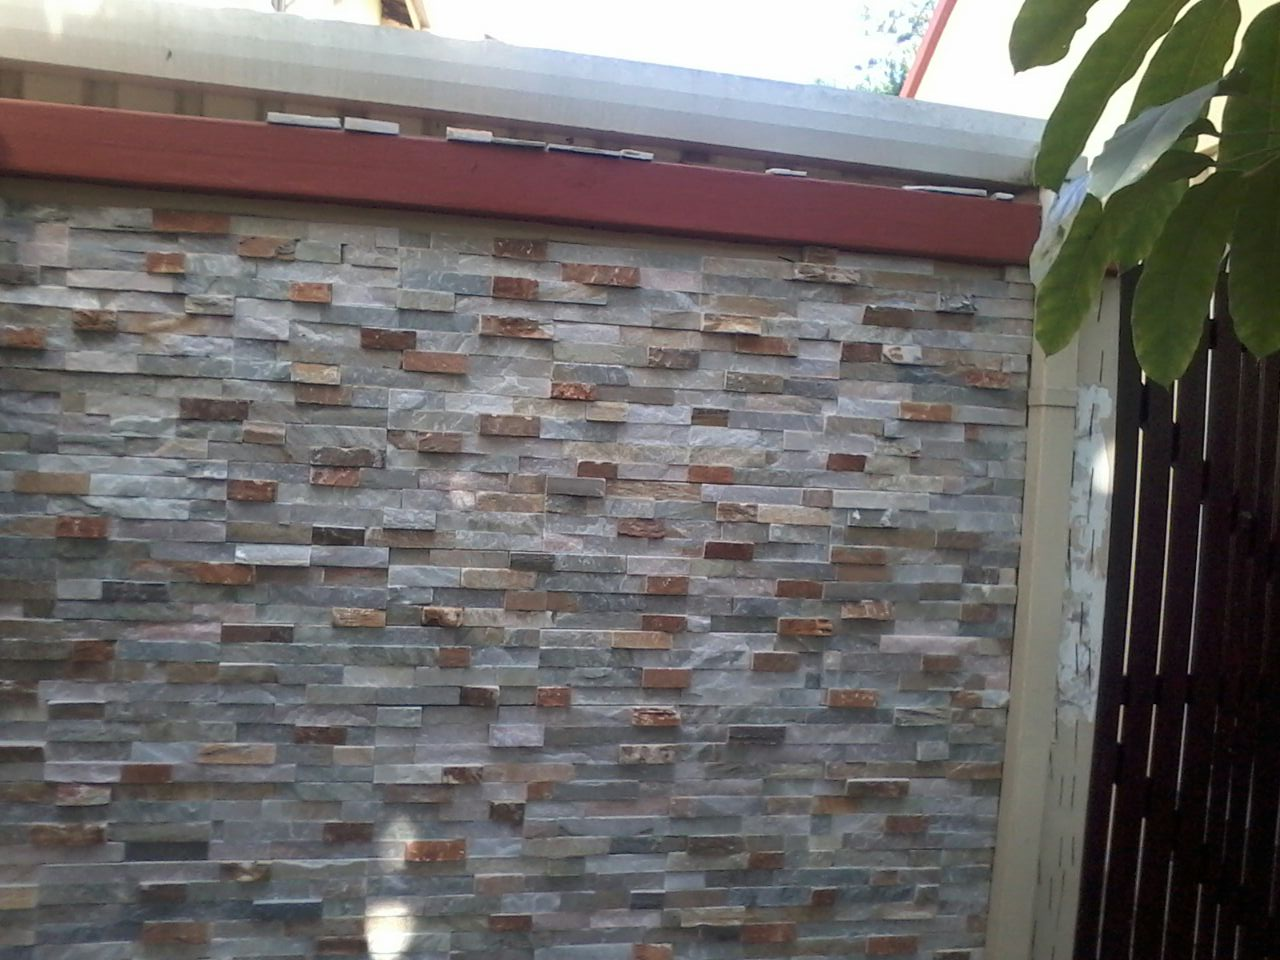 Mosaic Tiling by Rockden in Durban